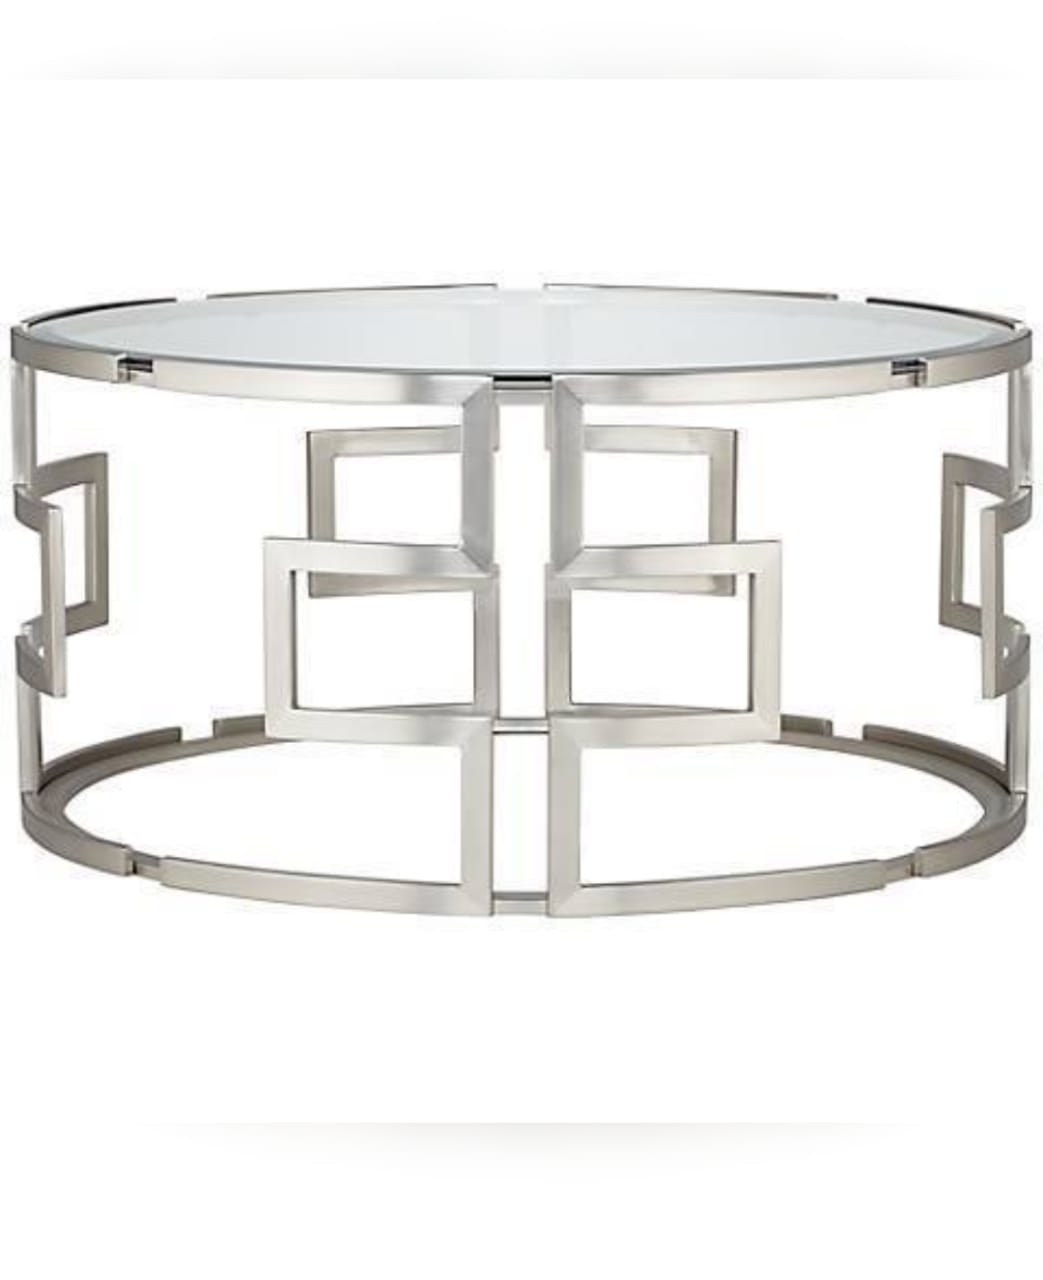 Superieur Round Silver Coffee Table